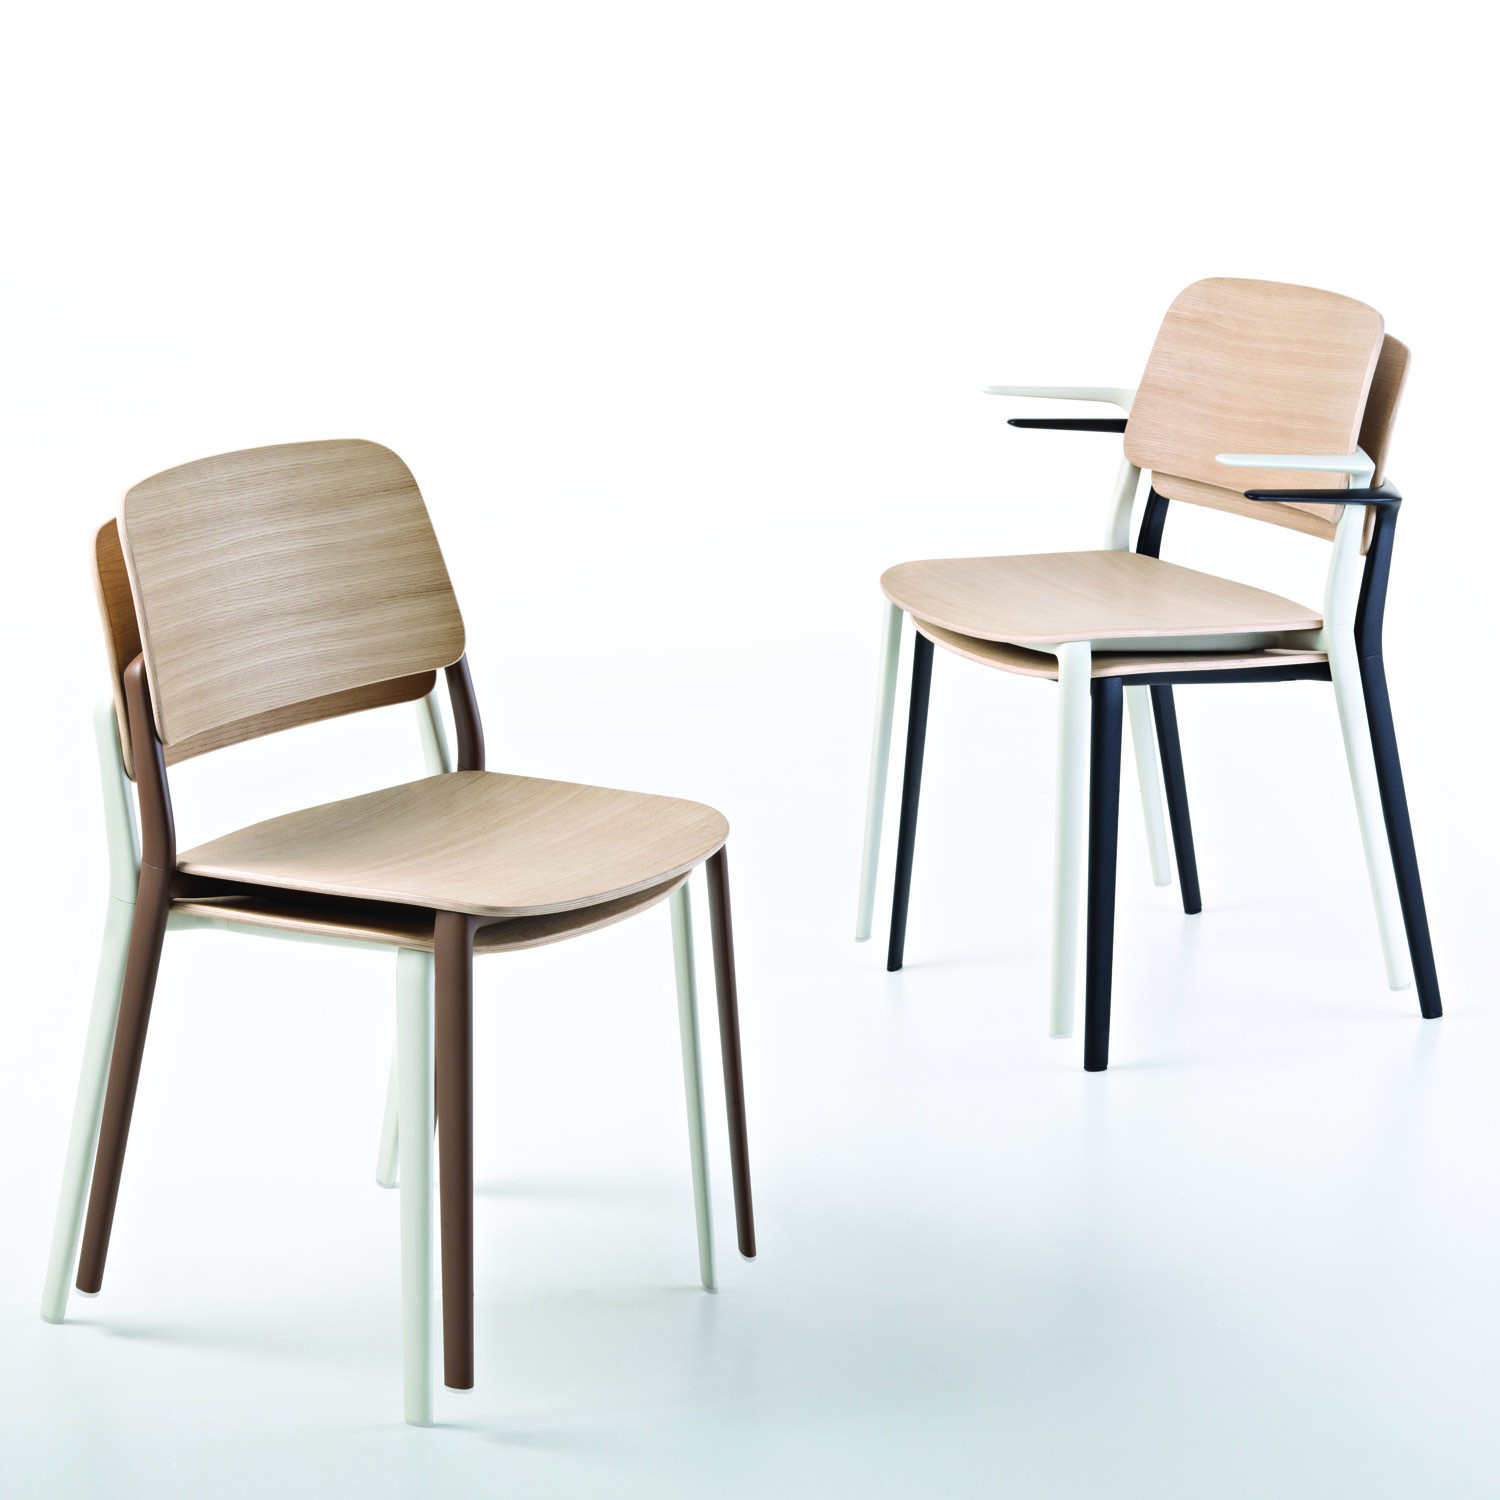 Stackable Appia chair